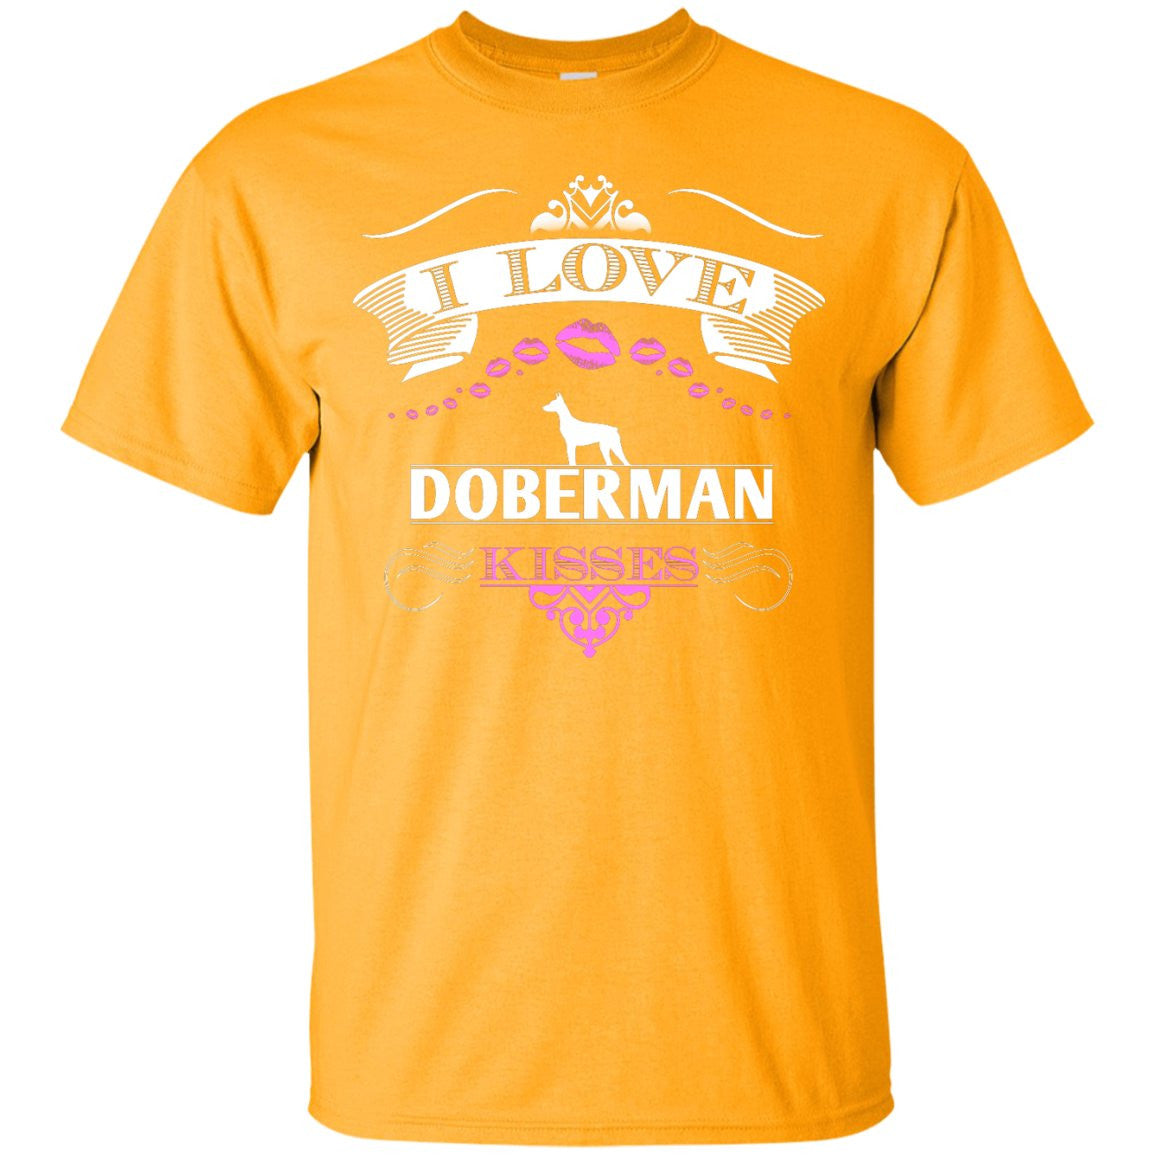 I LOVE DOBERMAN KISSES - FRONT DESIGN - Custom Ultra Cotton T-Shirt